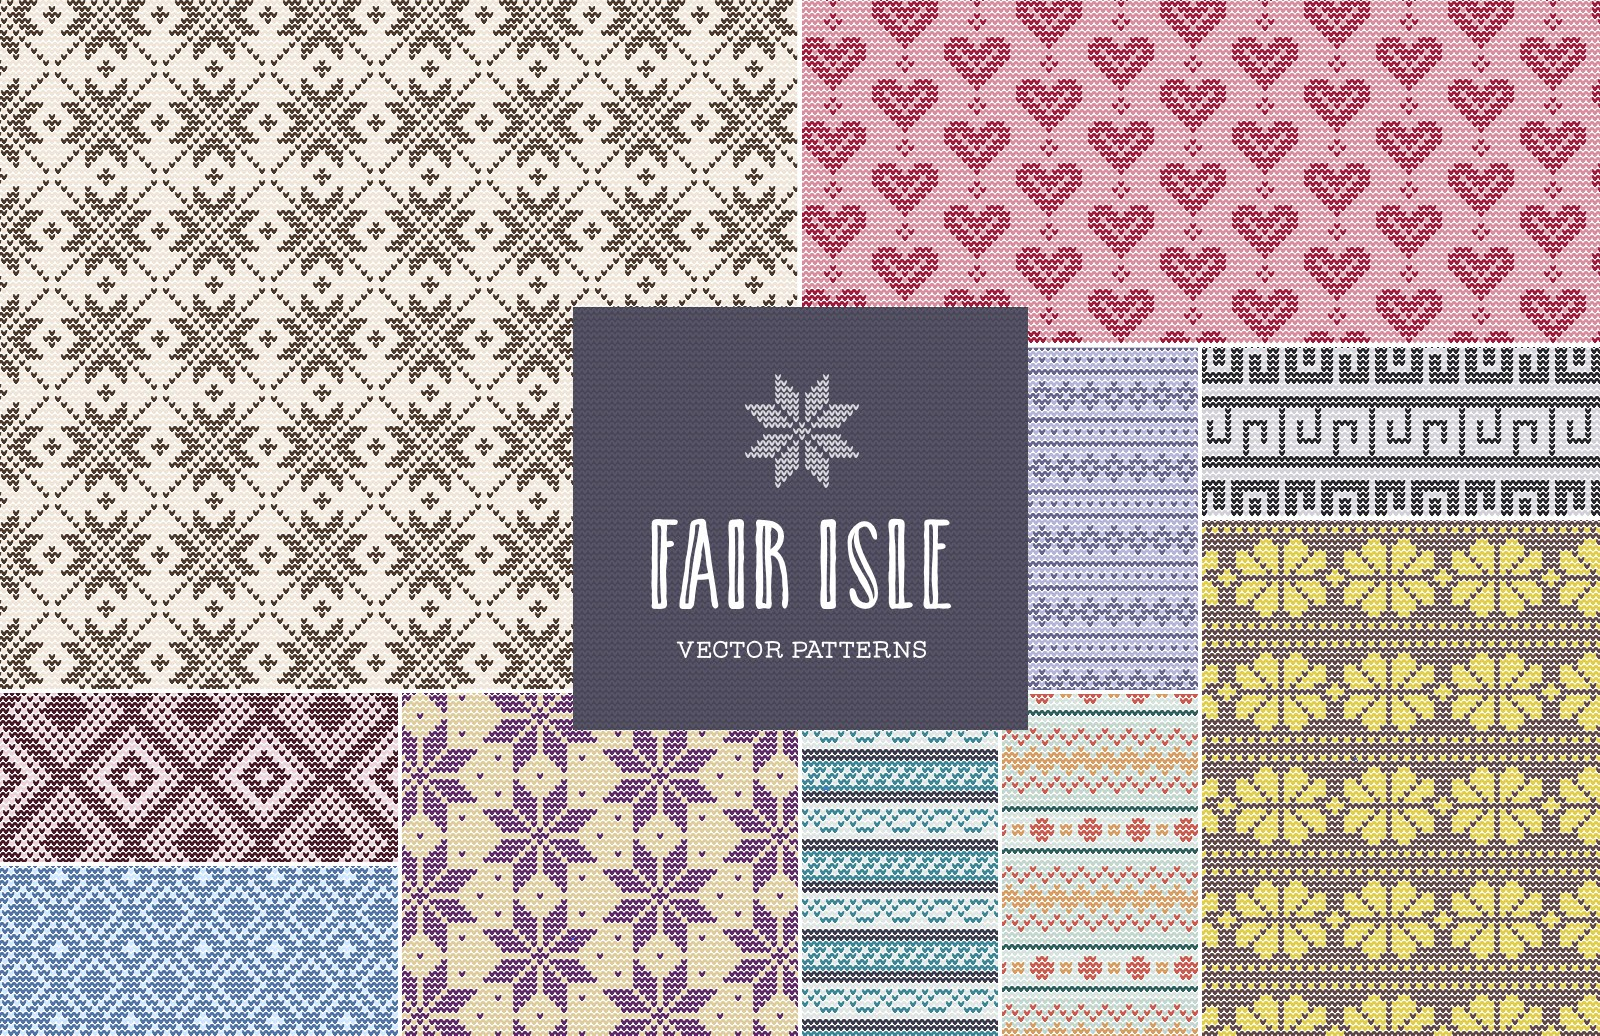 Seamless Fair Isle Vector Patterns 1